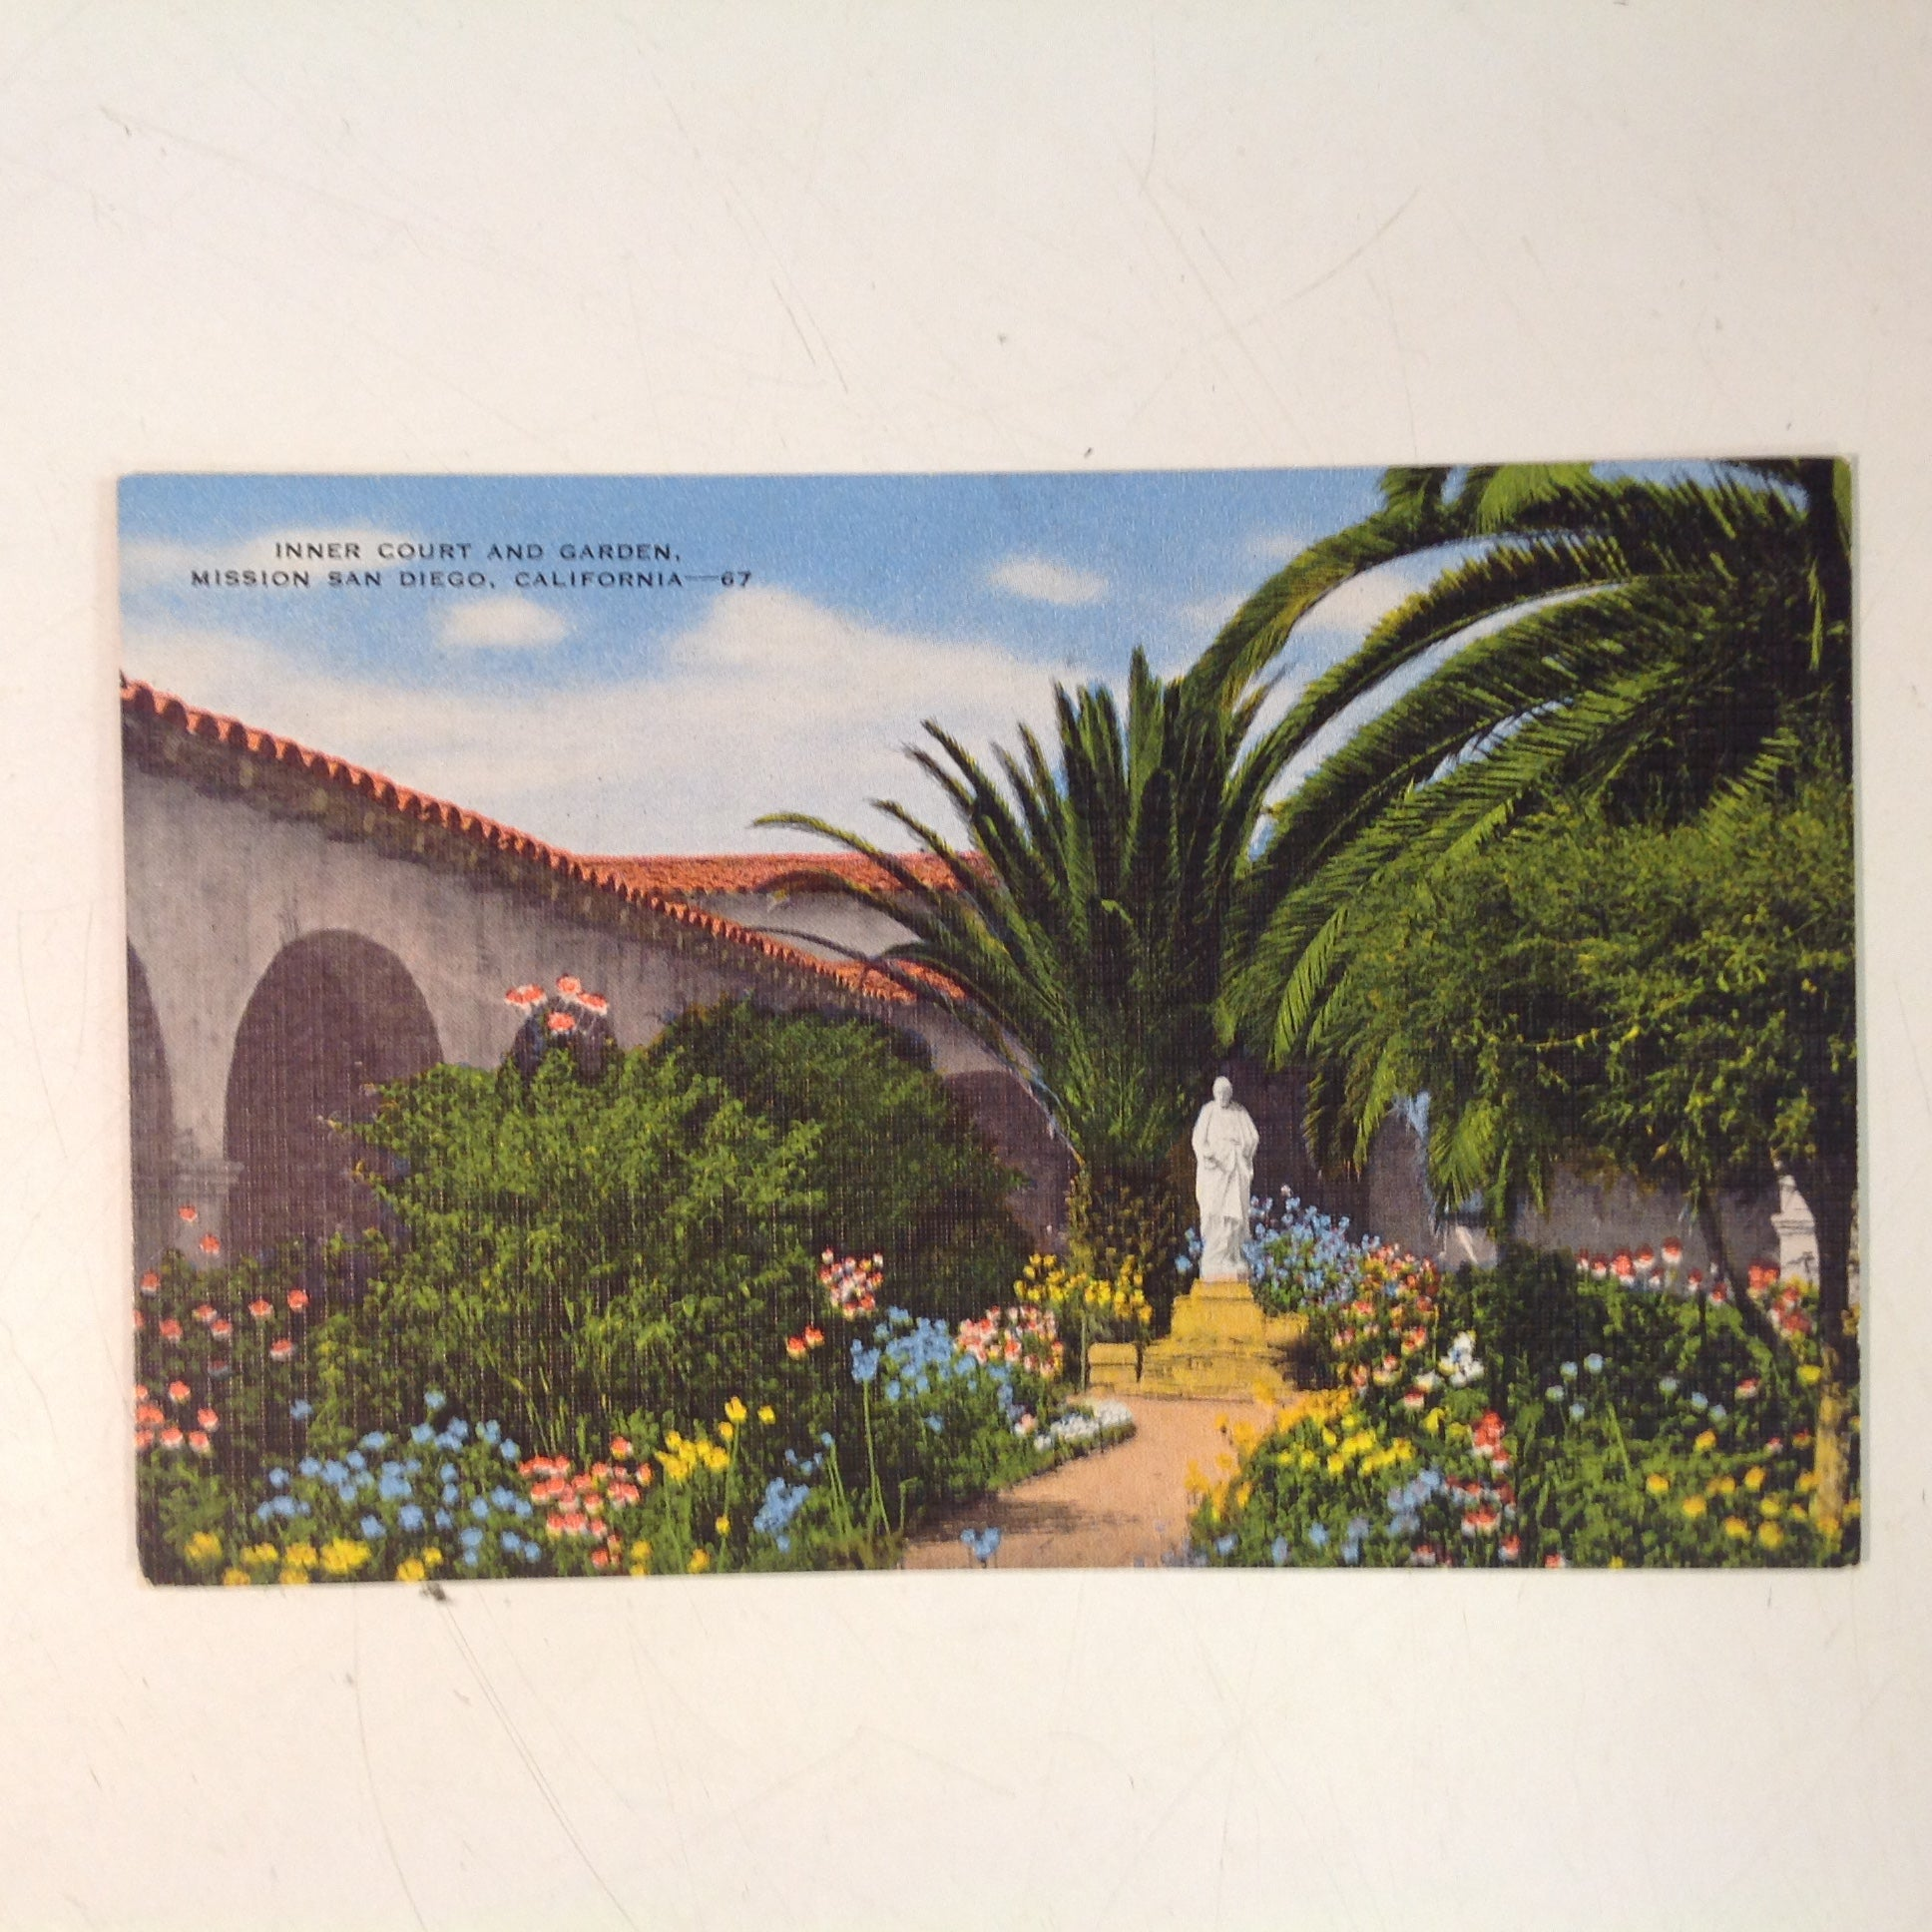 Vintage Hopkins News Agency Color Postcard Inner Court and Garden Mission San Diego California